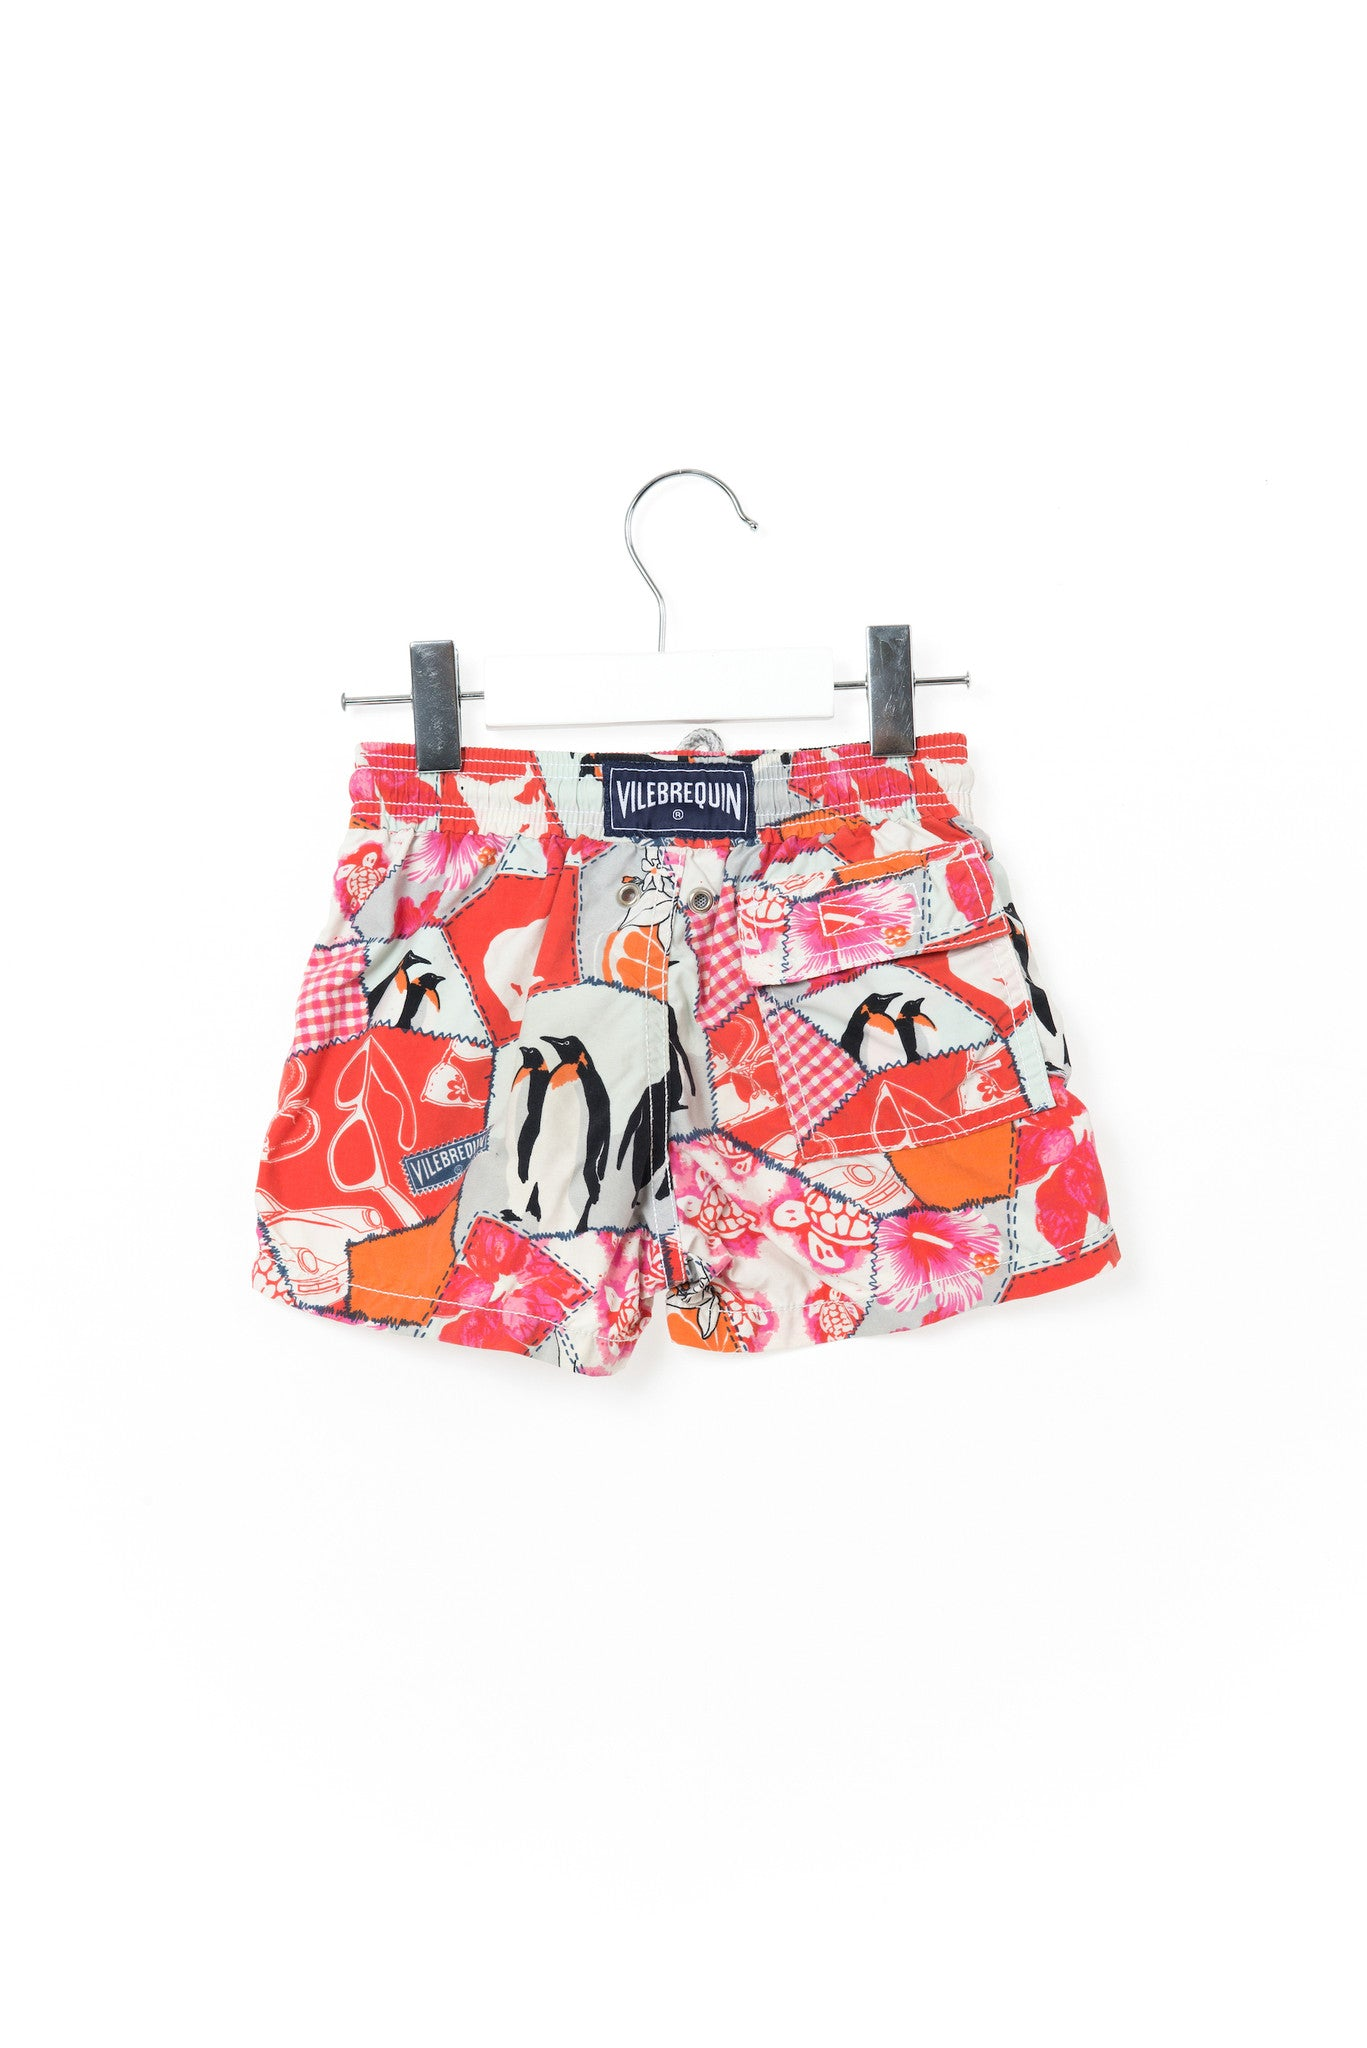 Swimwear 2T, Vilebrequin at Retykle - Online Baby & Kids Clothing Up to 90% Off